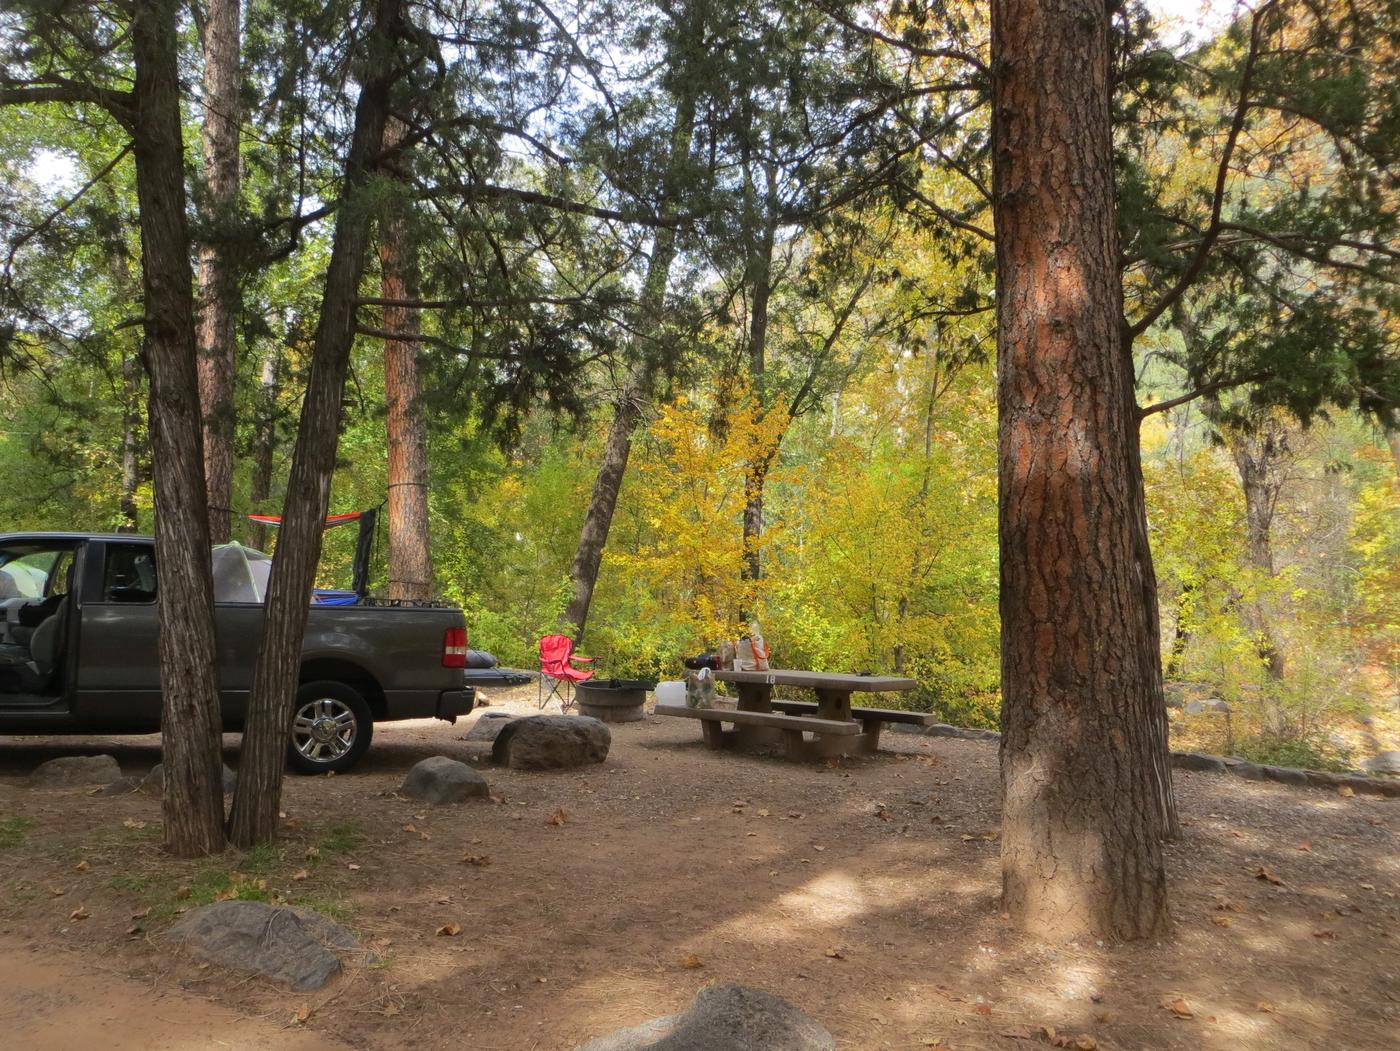 Manzanita Campground site #18 featuring the treed picnic area, camping space, and fire pit.